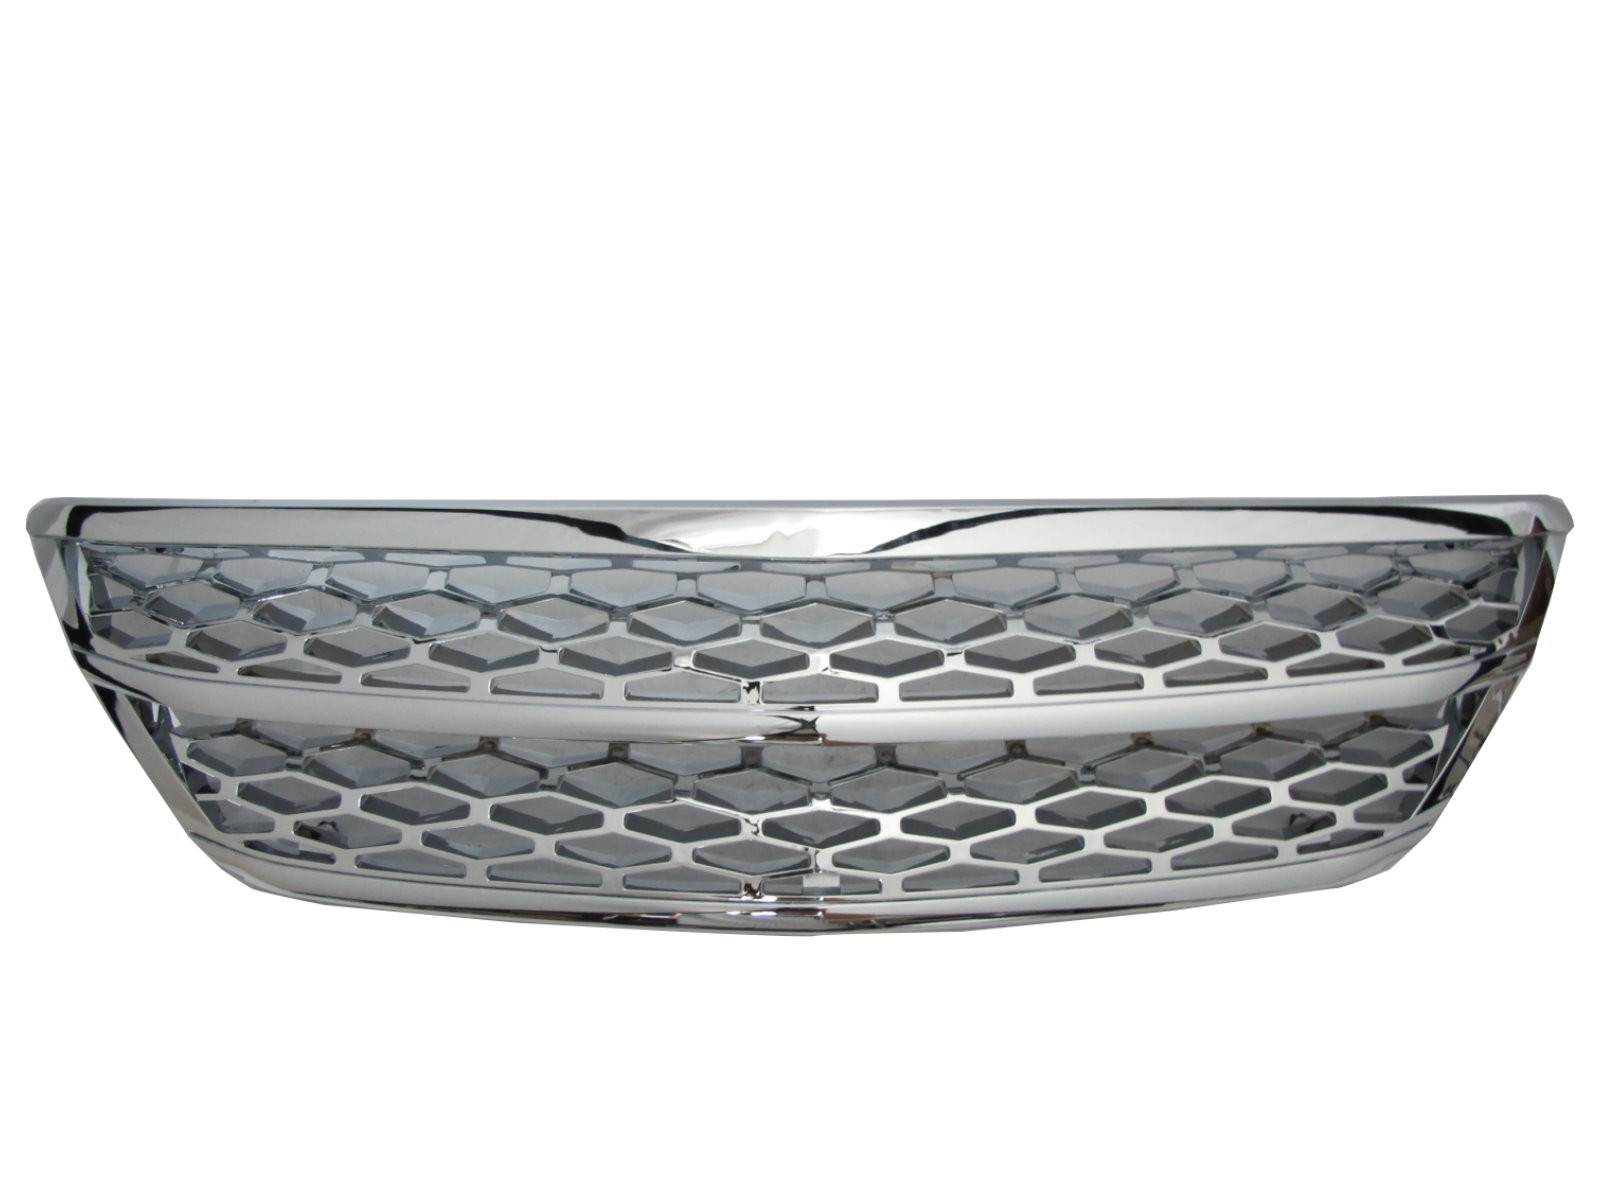 CrazyTheGod RX RX330/RX350/RX400H XU30 Second generation 2003-2009 SUV 5D Honeycomb Mesh GRILLE/GRILL Chrome for LEXUS